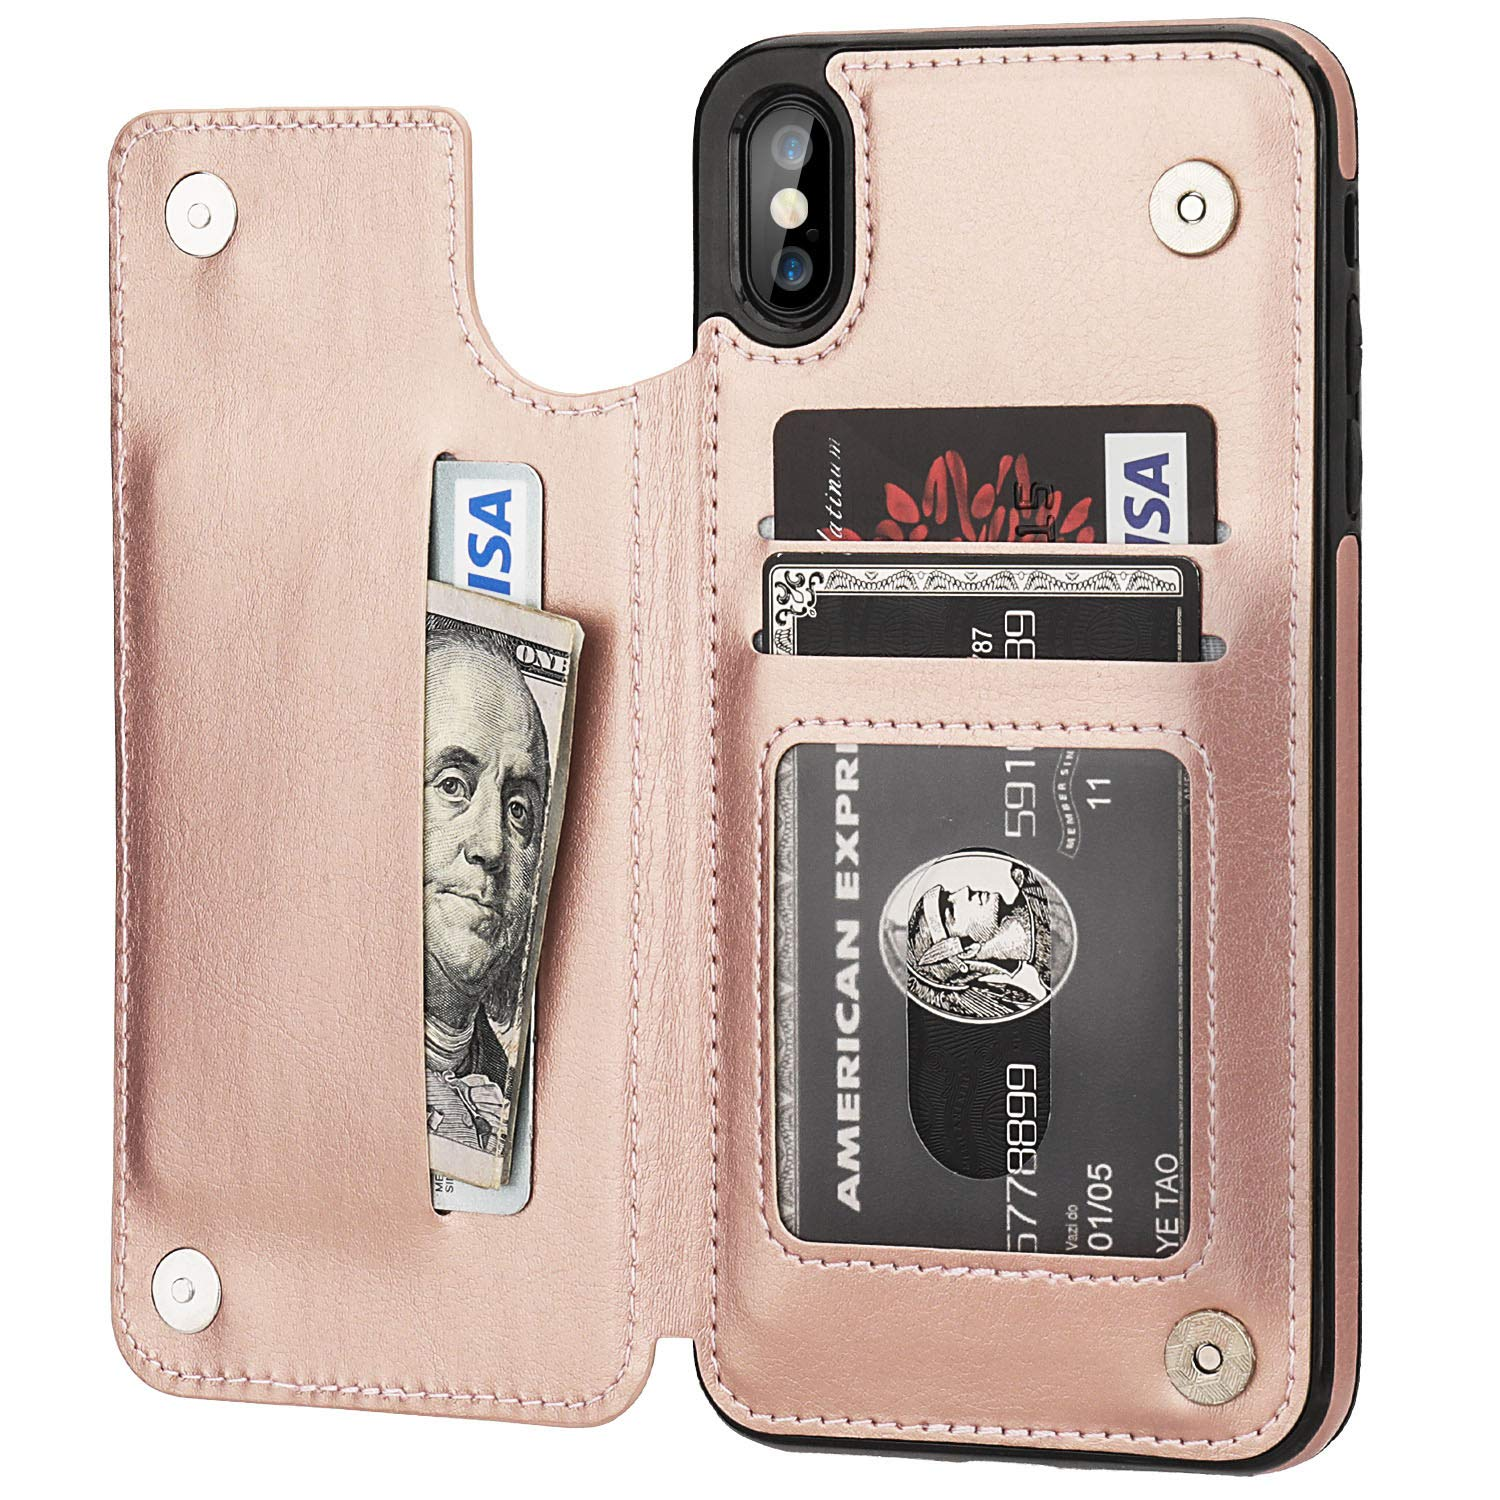 iPhone Xs Max Wallet Case with Card Holder,OT ONETOP Premium PU Leather Kickstand Card Slots Case,Double Magnetic Clasp and Durable Shockproof Cover 6.5 Inch(Rose Gold) by OT ONETOP